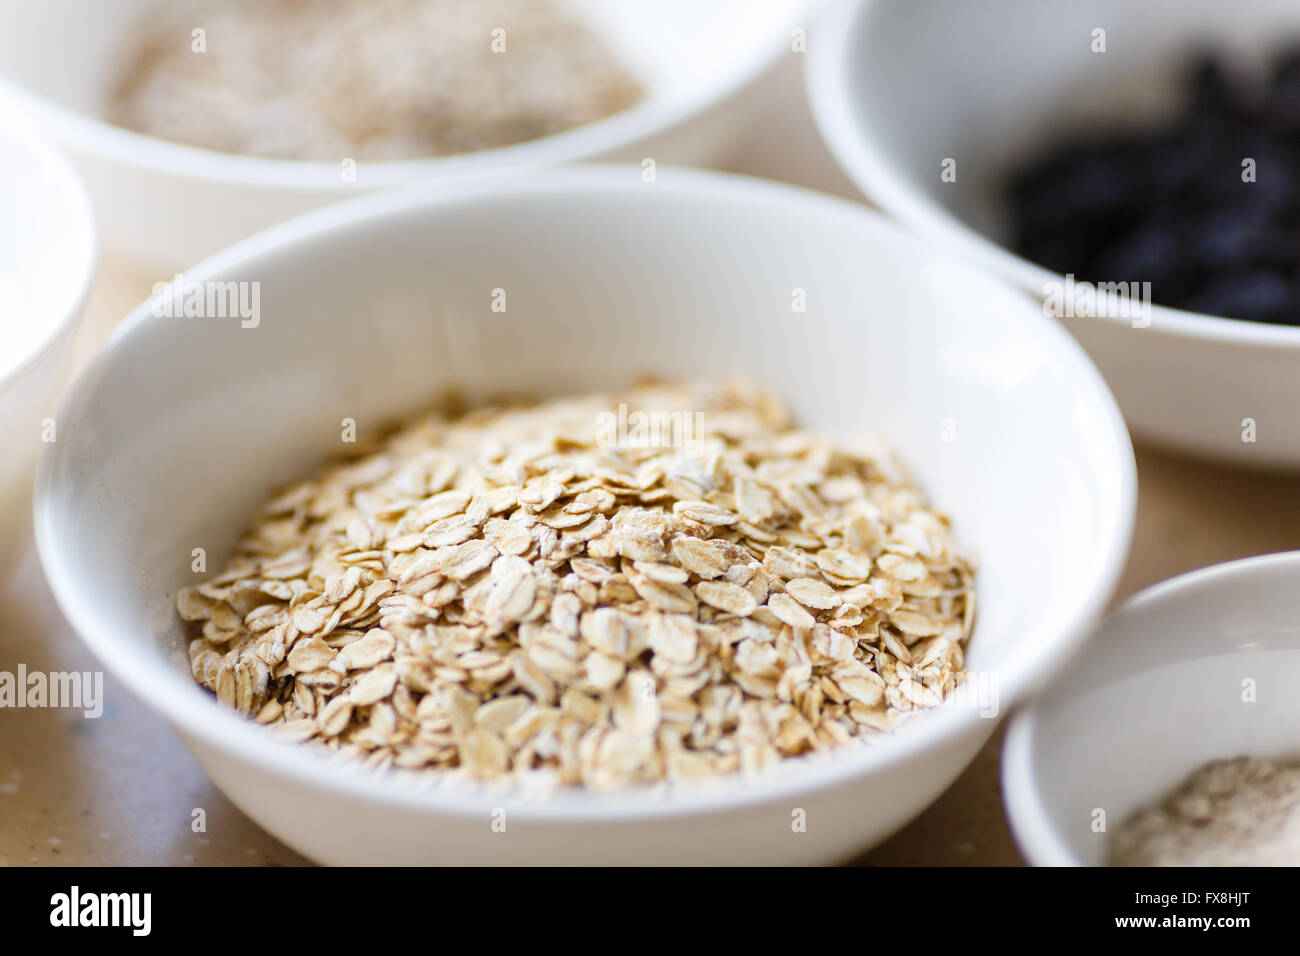 Rolled oats in a plate on a table Stock Photo